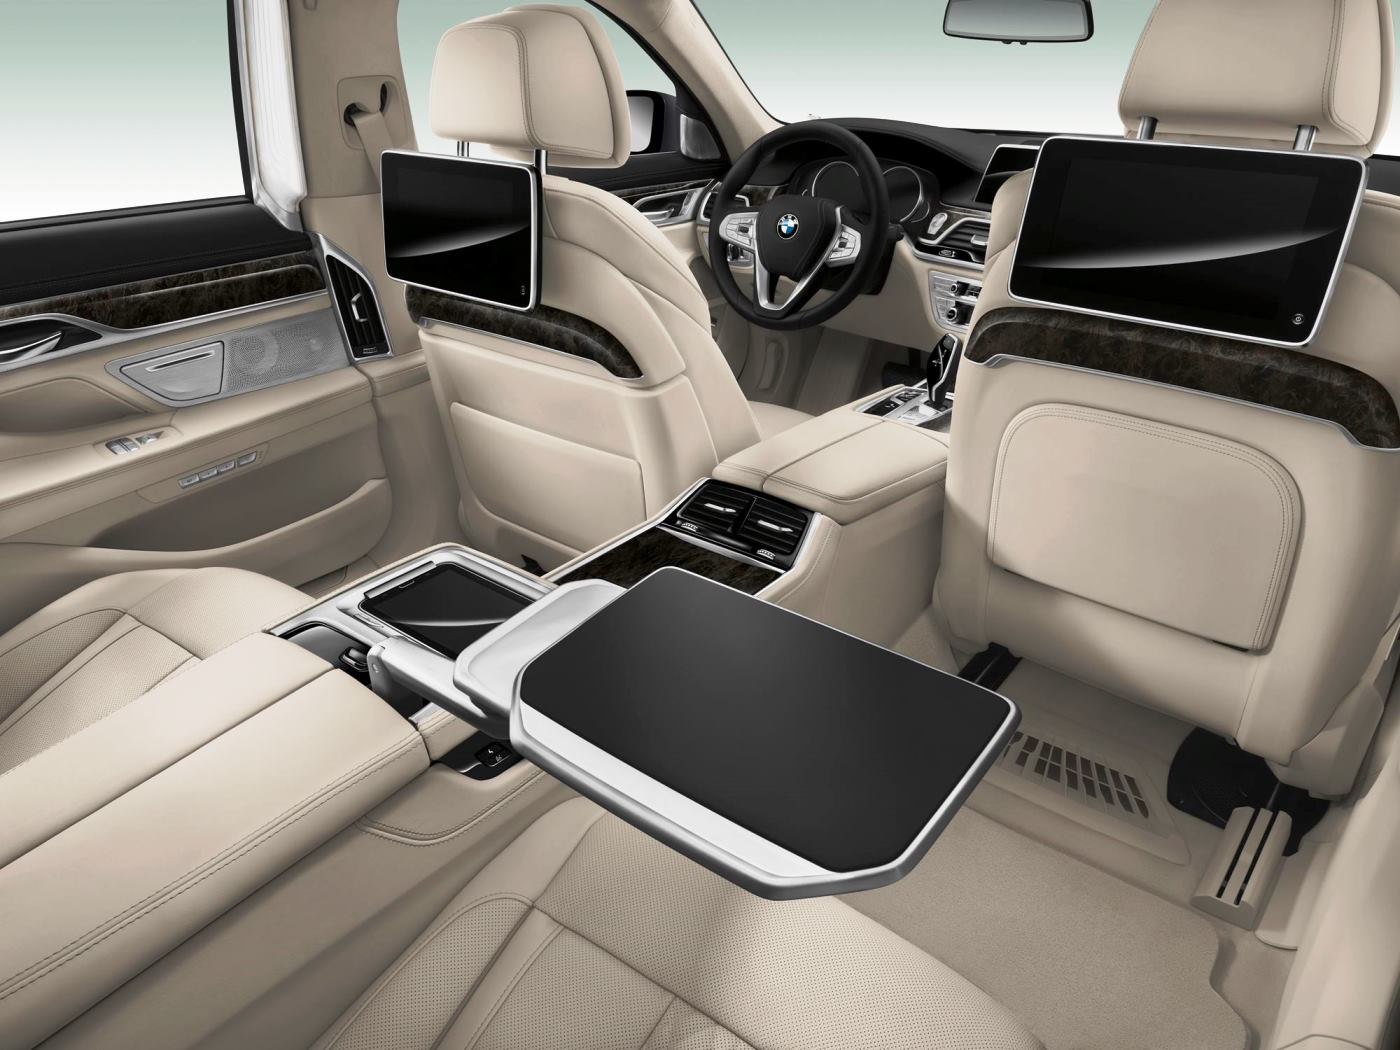 2016 BMW 7 Series Interior Photos 17